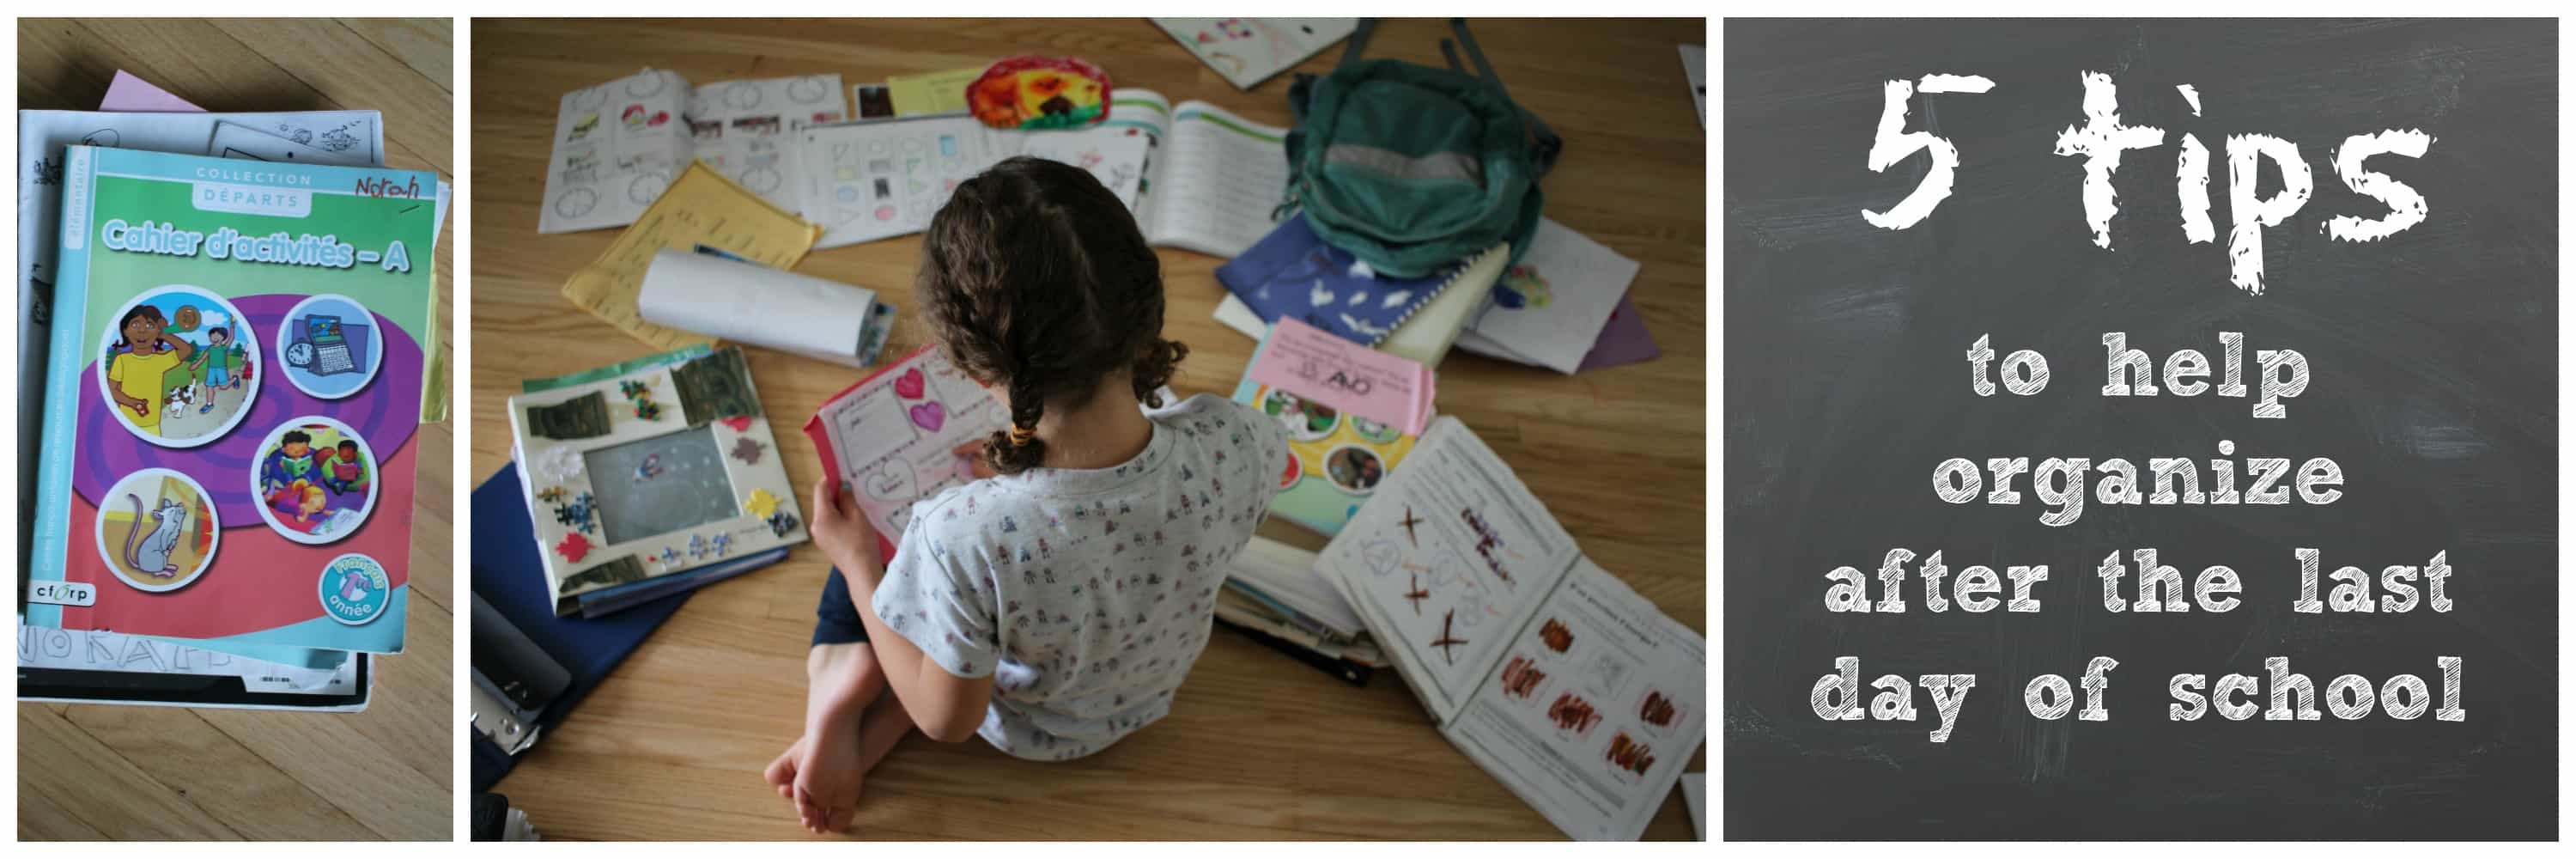 5 Tips To Organize Artwork On The Last Day Of School